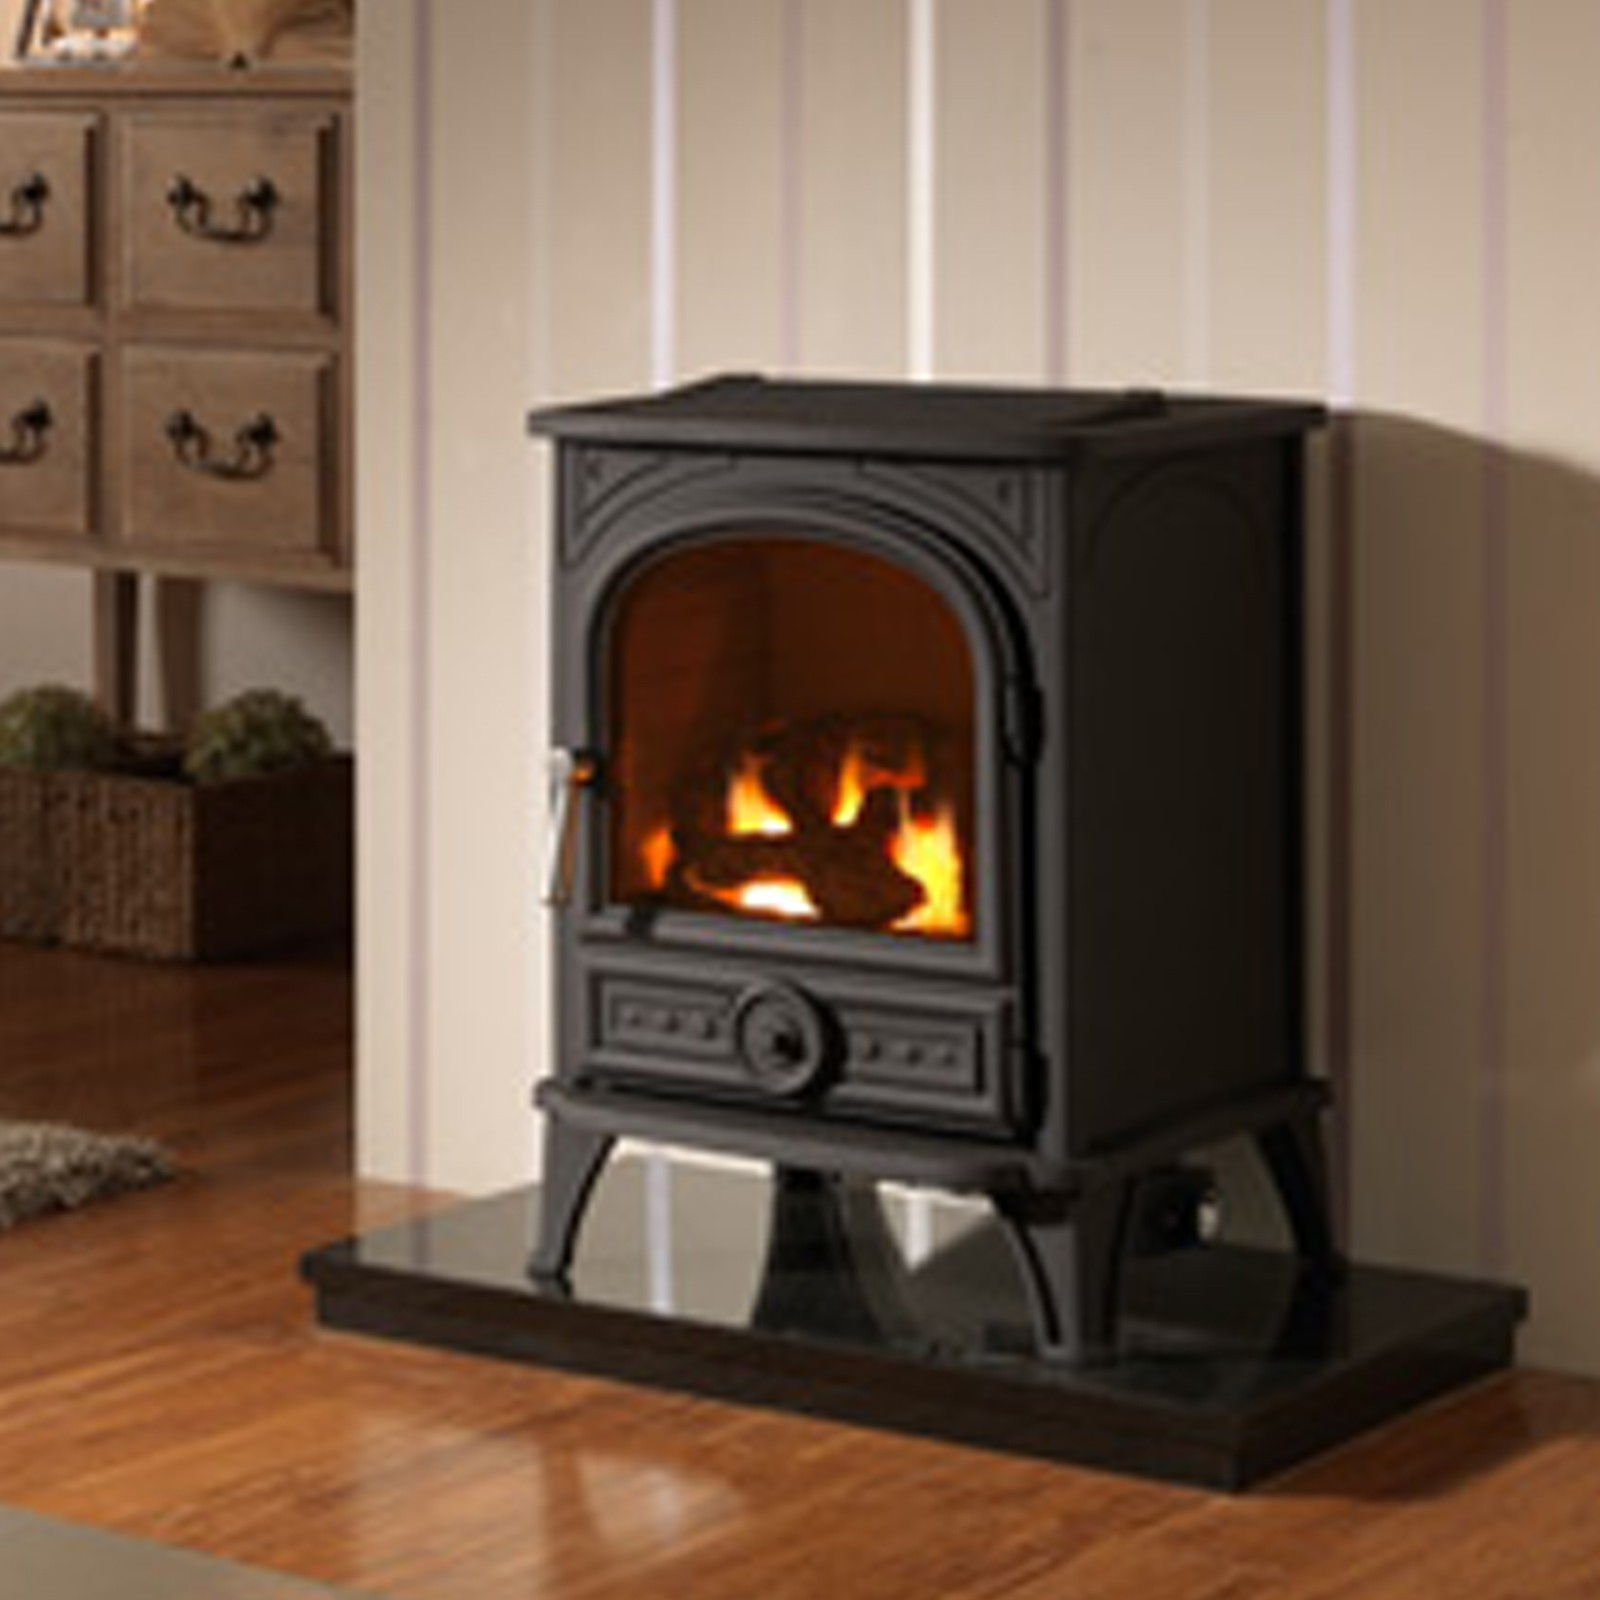 We have a vast selection of Flueless Esse stoves here at Fireplaces 4 Life. We offer our top quality products to you at incredibly low prices. Call us today on 01274 871010 to find out more. product